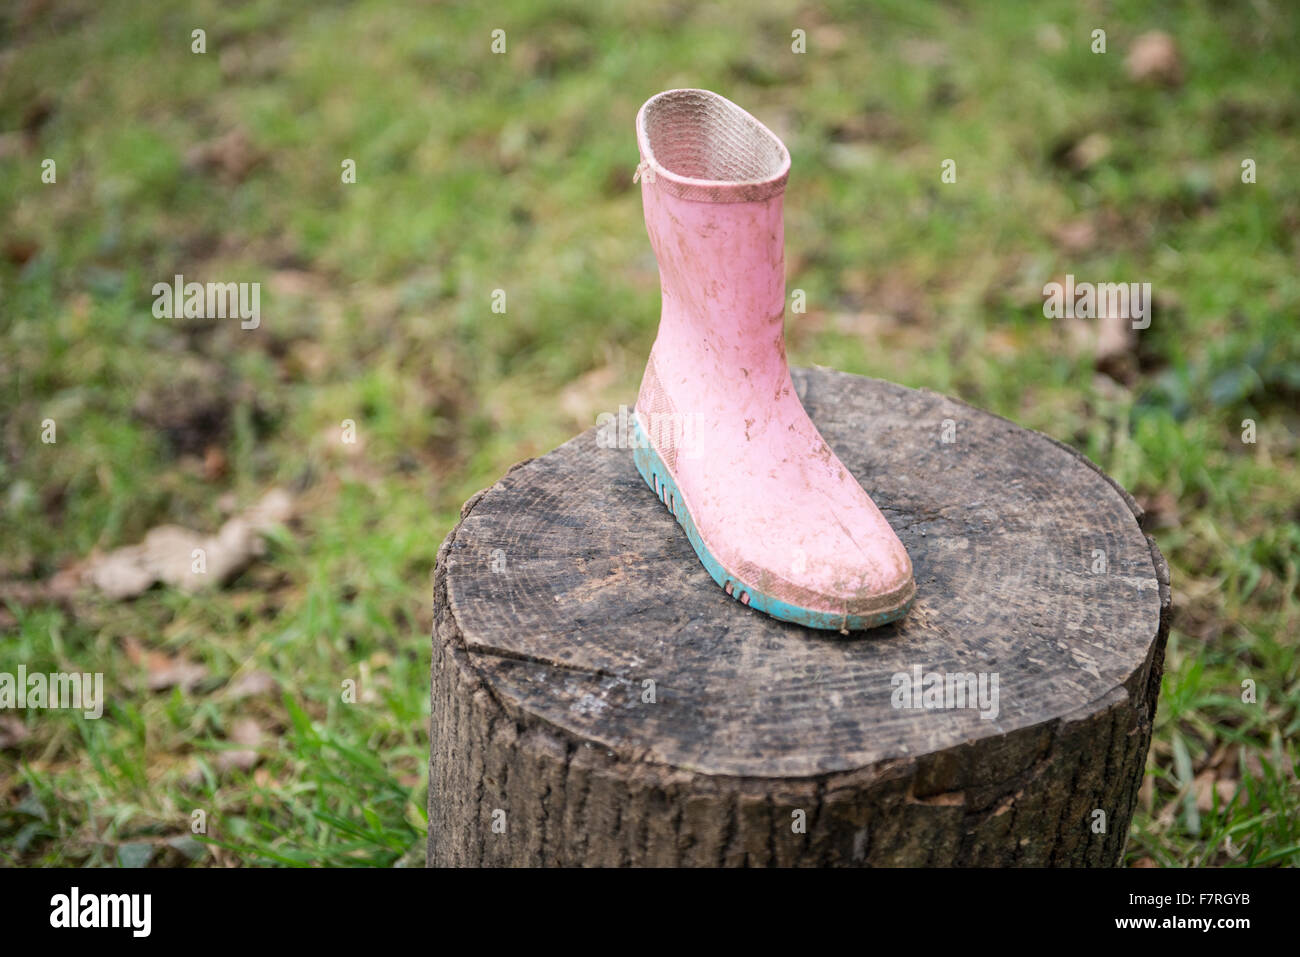 A pink childs welly boot on a log Stock Photo